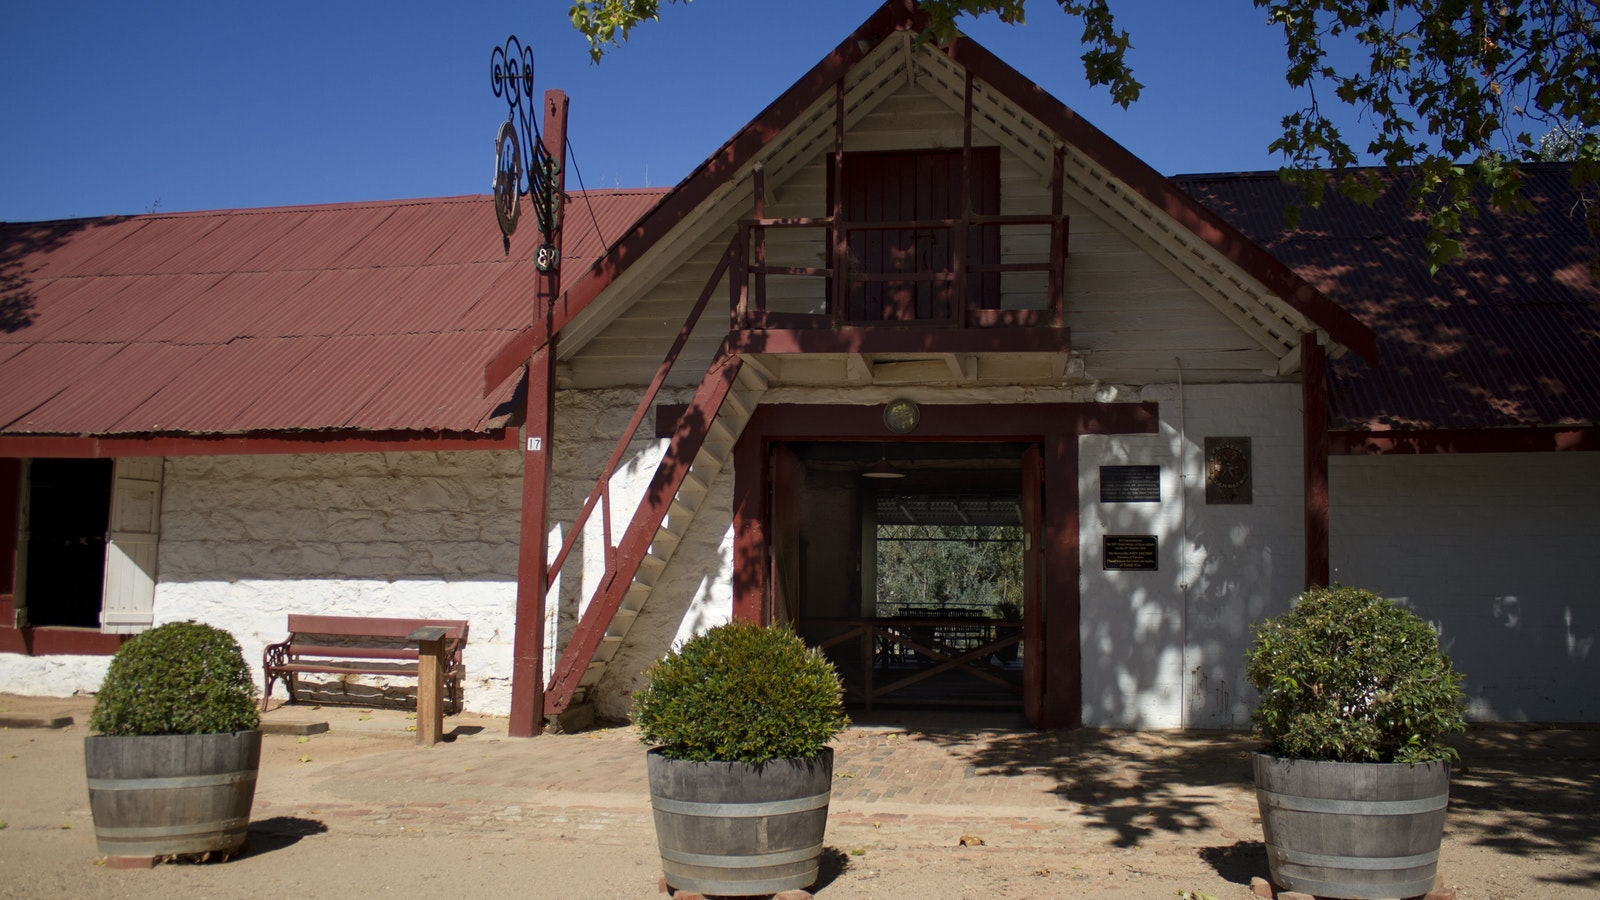 Entrance to original Winery building and Cellar Door tasting